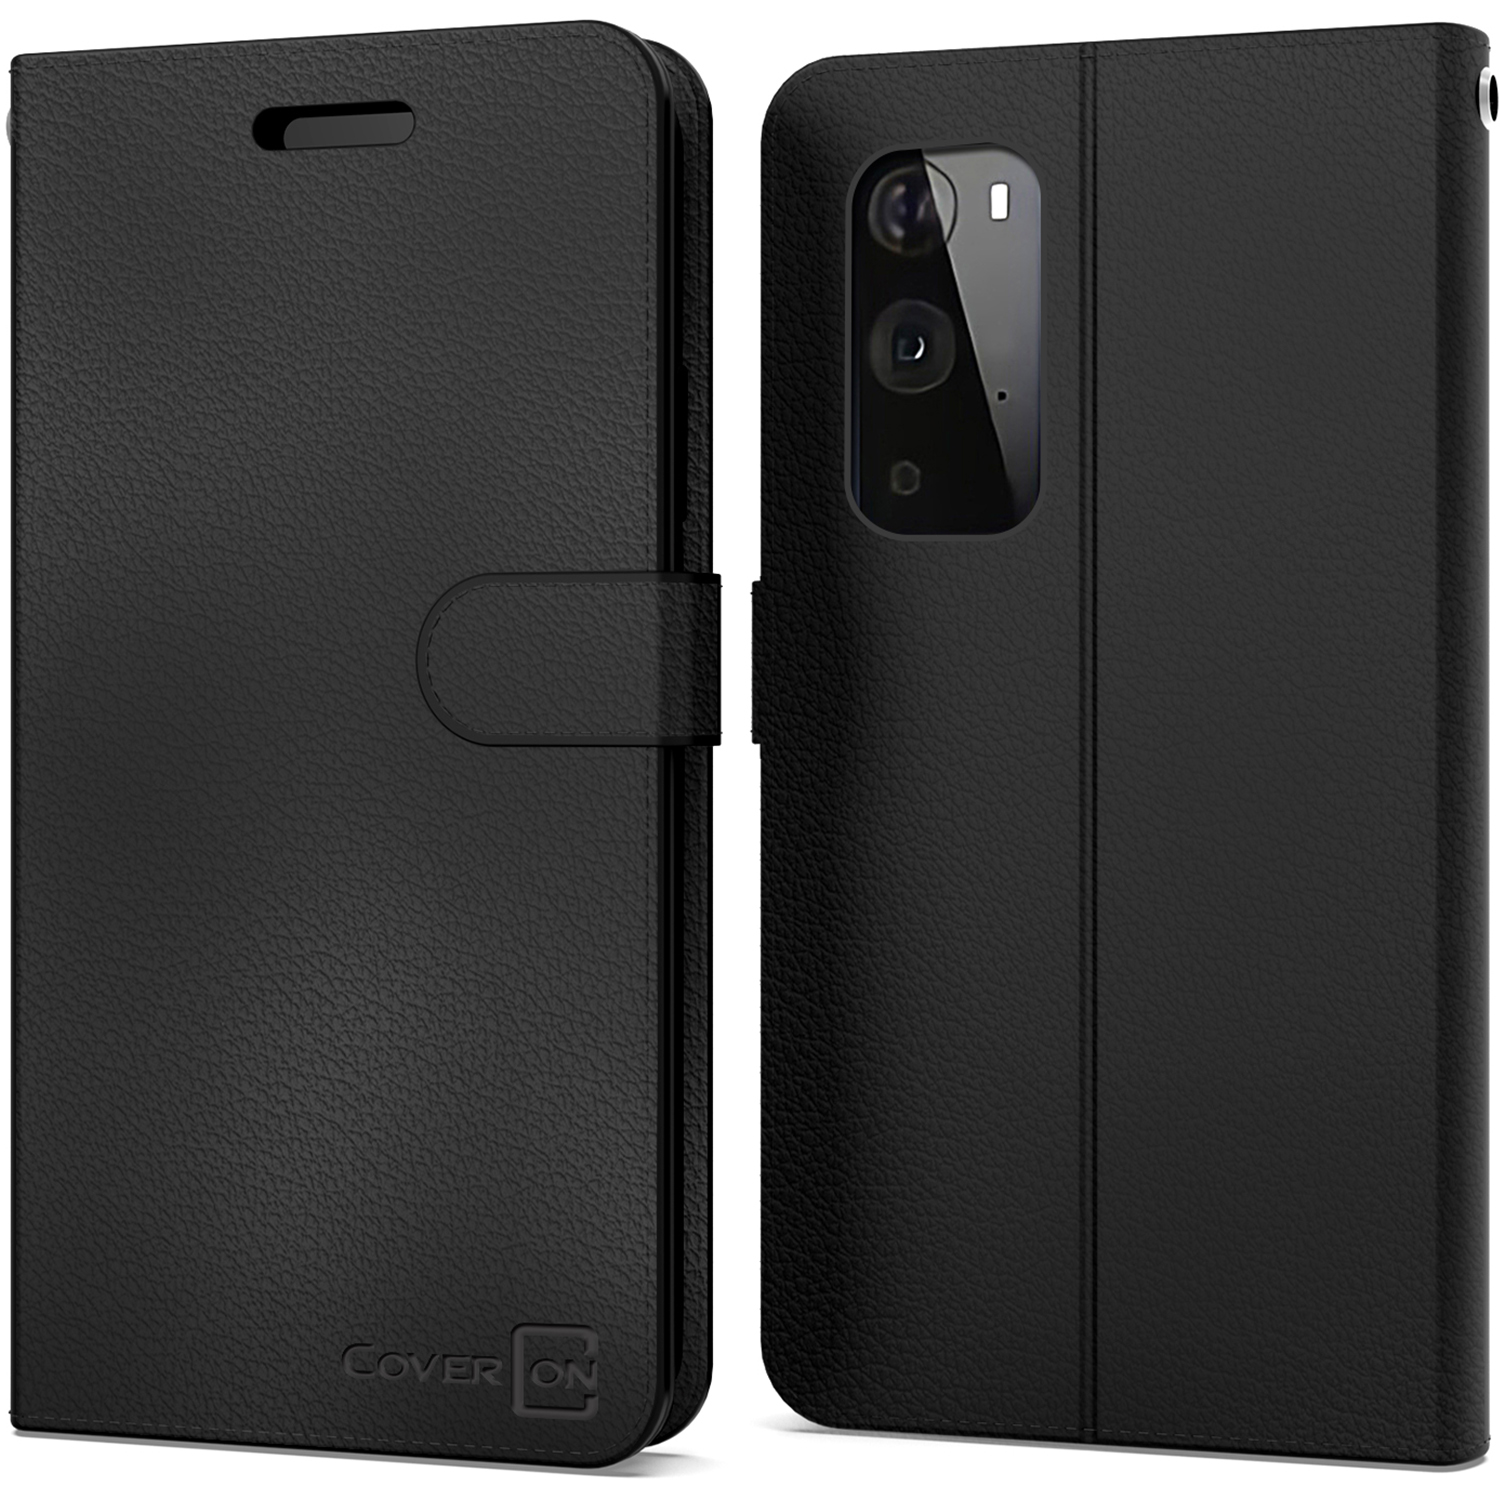 for sony xperia xa case hard back soft bumper hybrid slim cover ebay. Black Bedroom Furniture Sets. Home Design Ideas